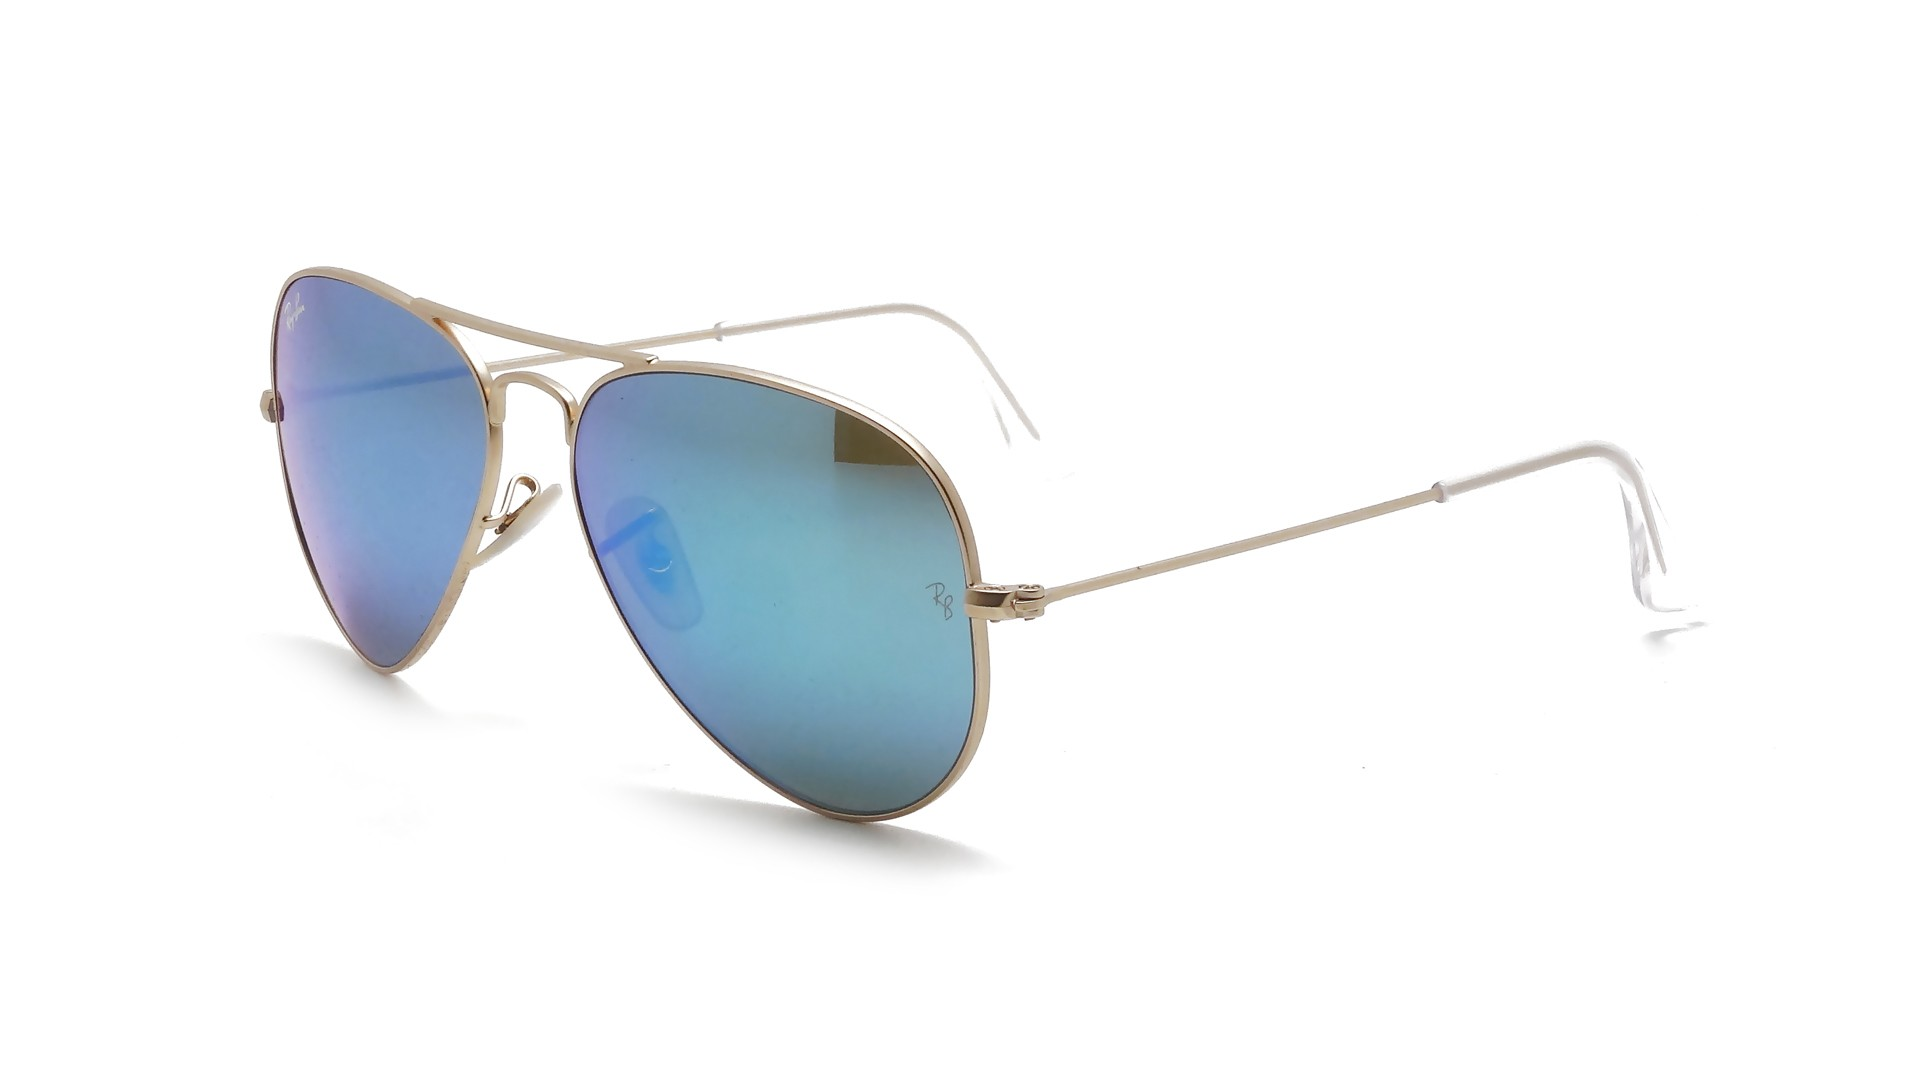 Ray ban aviator large metal gold rb3025 112 17 55 14 for Ray ban aviator miroir homme